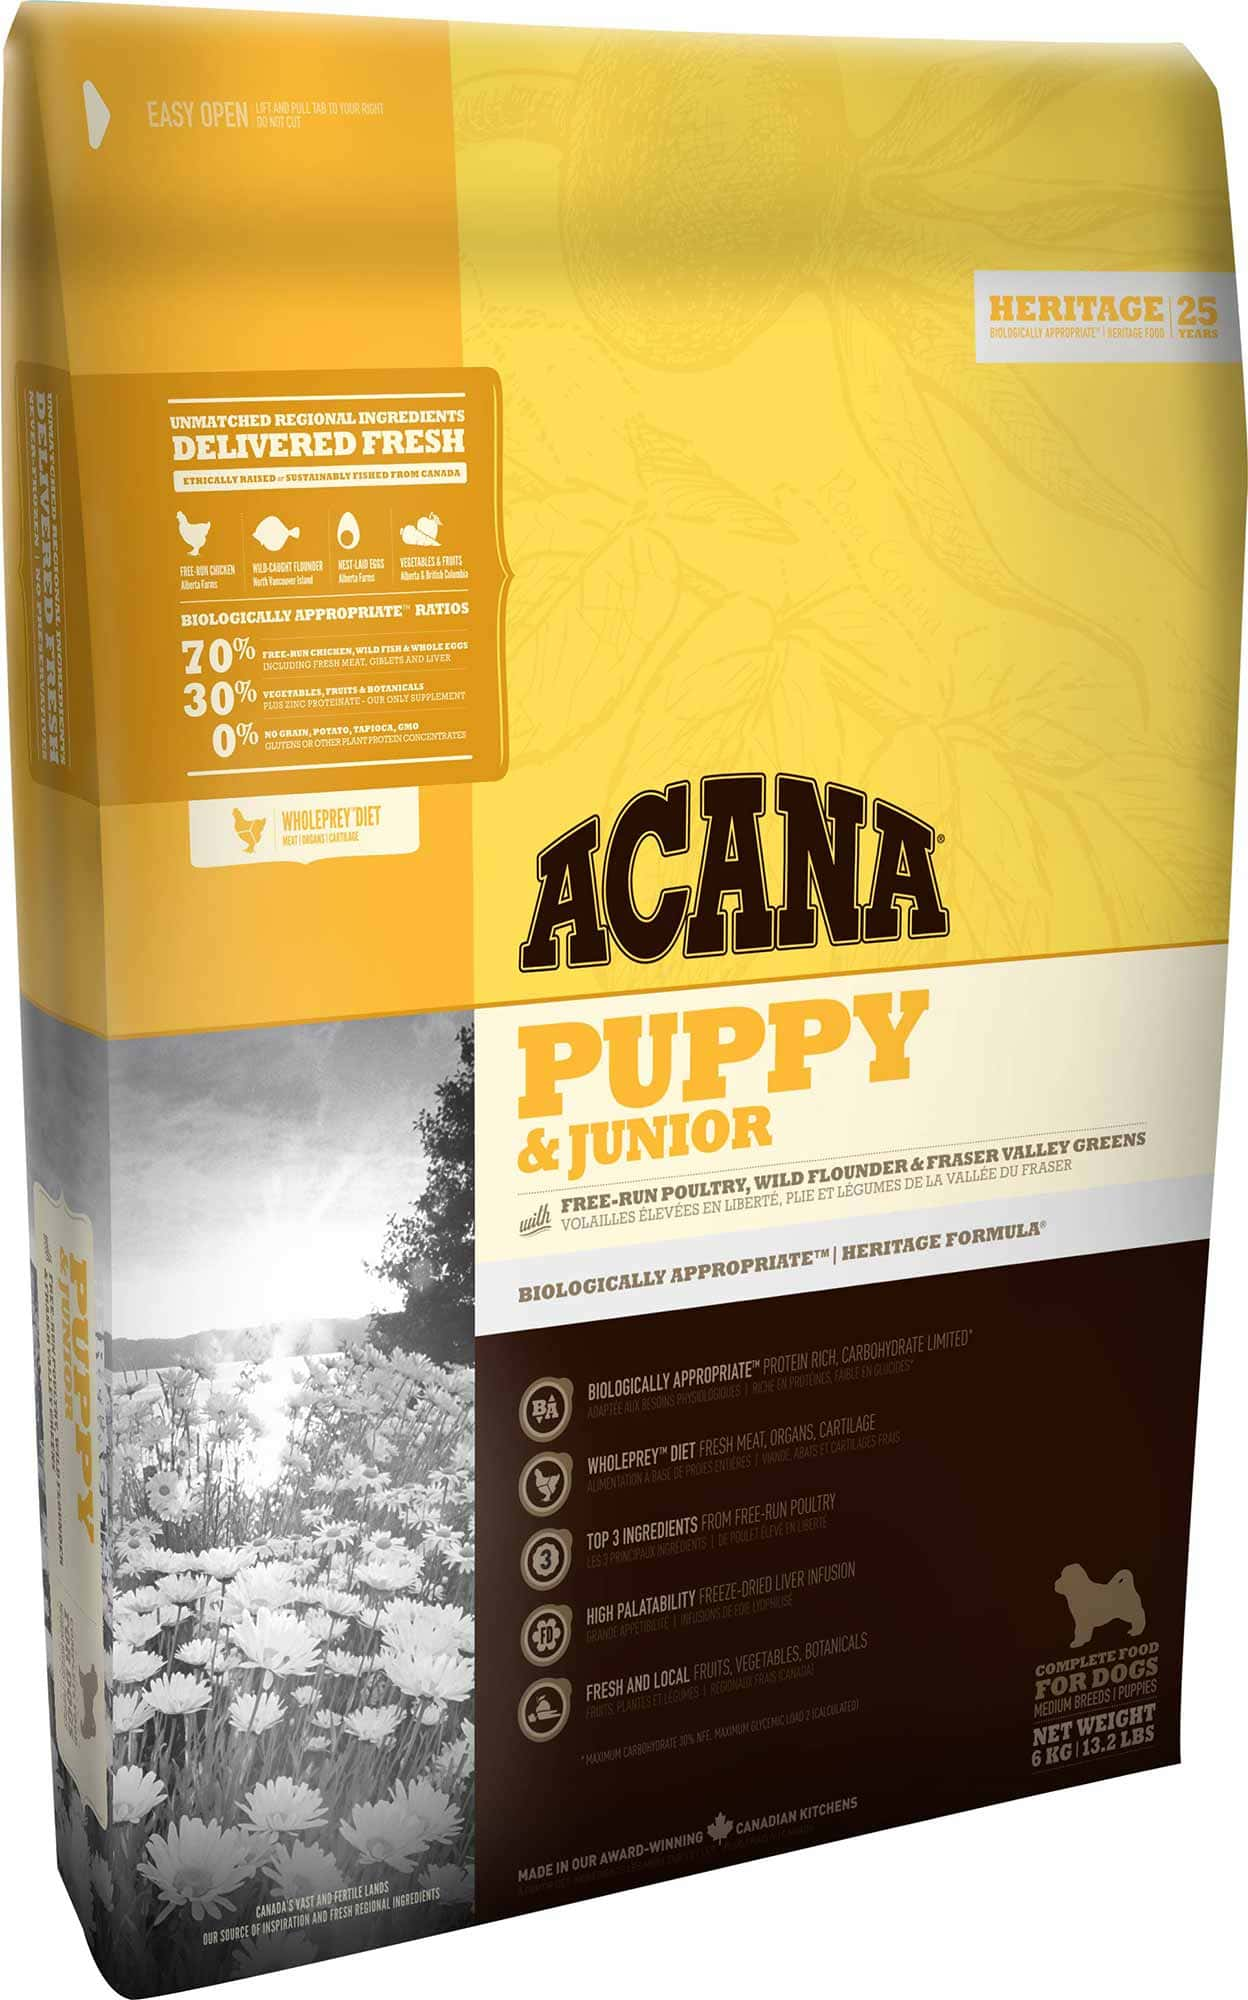 Acana Puppy & Junior 11.4 Kg